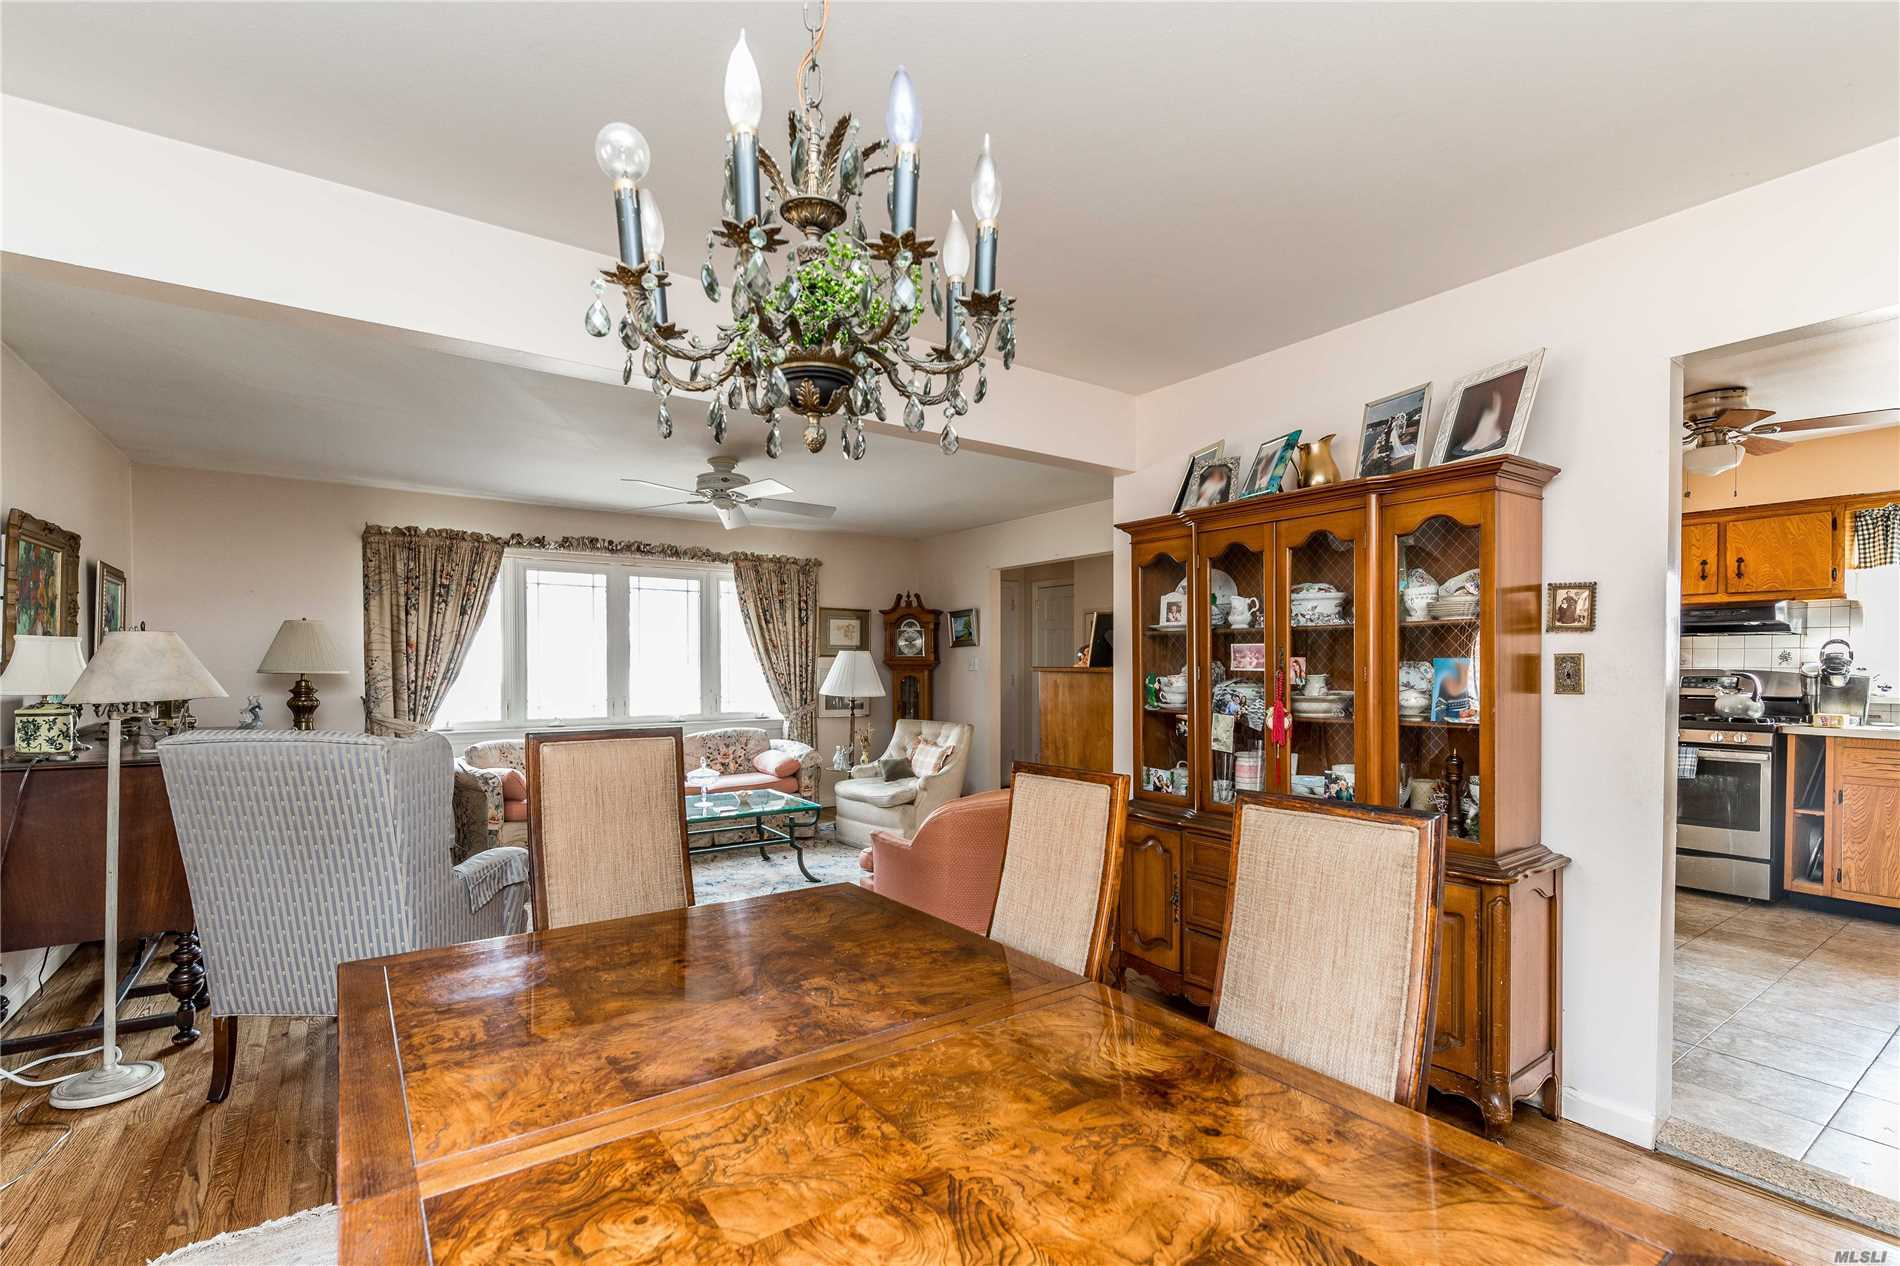 Move Right Into This Stunning 3Br Hi Ranch In The Heart Of Bayside Featuring Updated Kitchen, Renovated Bathrooms, Gleaming Hardwood Floors, Updated Windows, 2 Car Garage, Private Driveway, Full Finished Basement And Beautifully Manicured Private Yard. Blocks To Lirr And Bell Blvd!